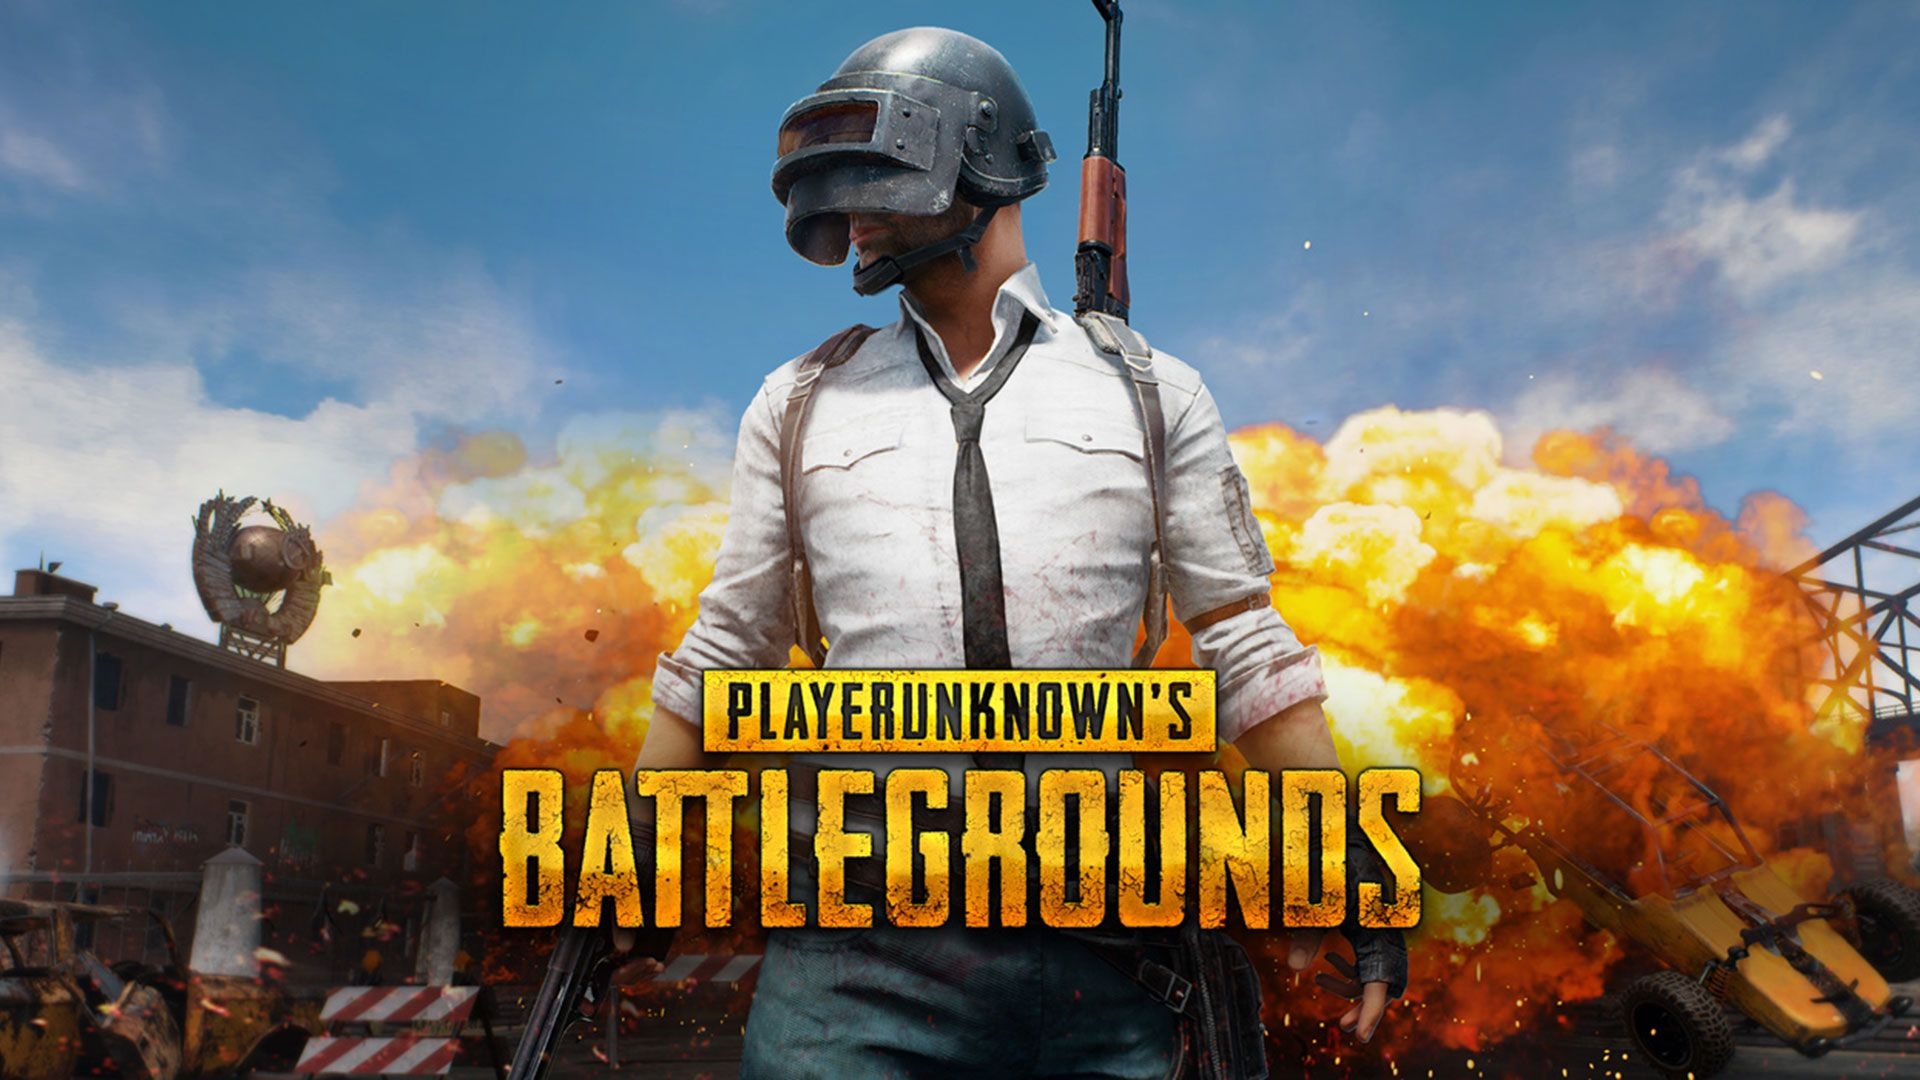 Pubg Wallpapers Full Hd On Wallpaper 1080p Hd My Pubg Wallpaper